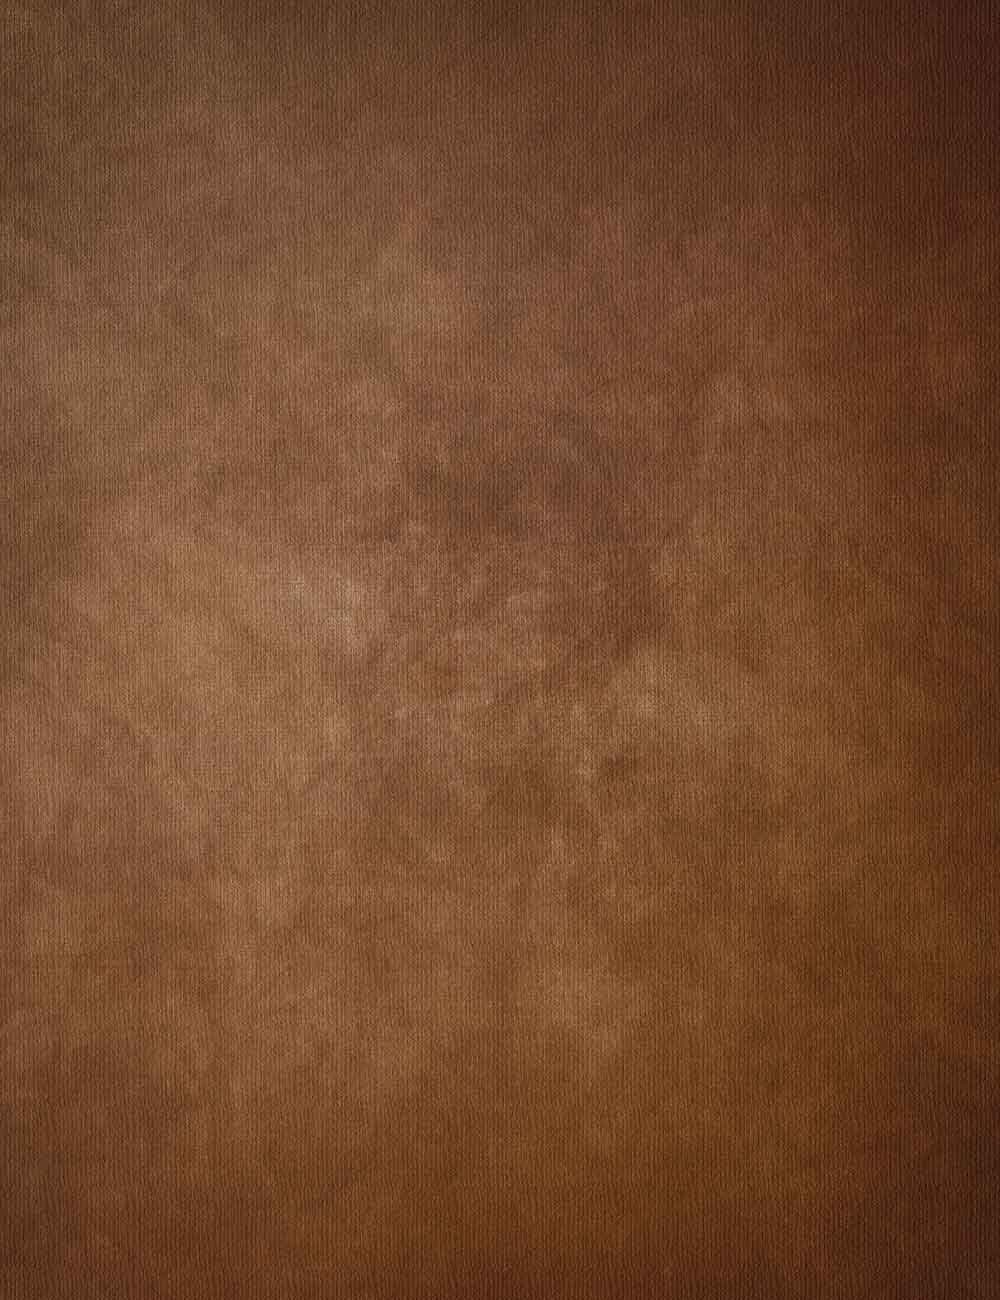 Abstract Brown Old Master Canvas Texture Backdrop For Studio Photo - Shop Backdrop